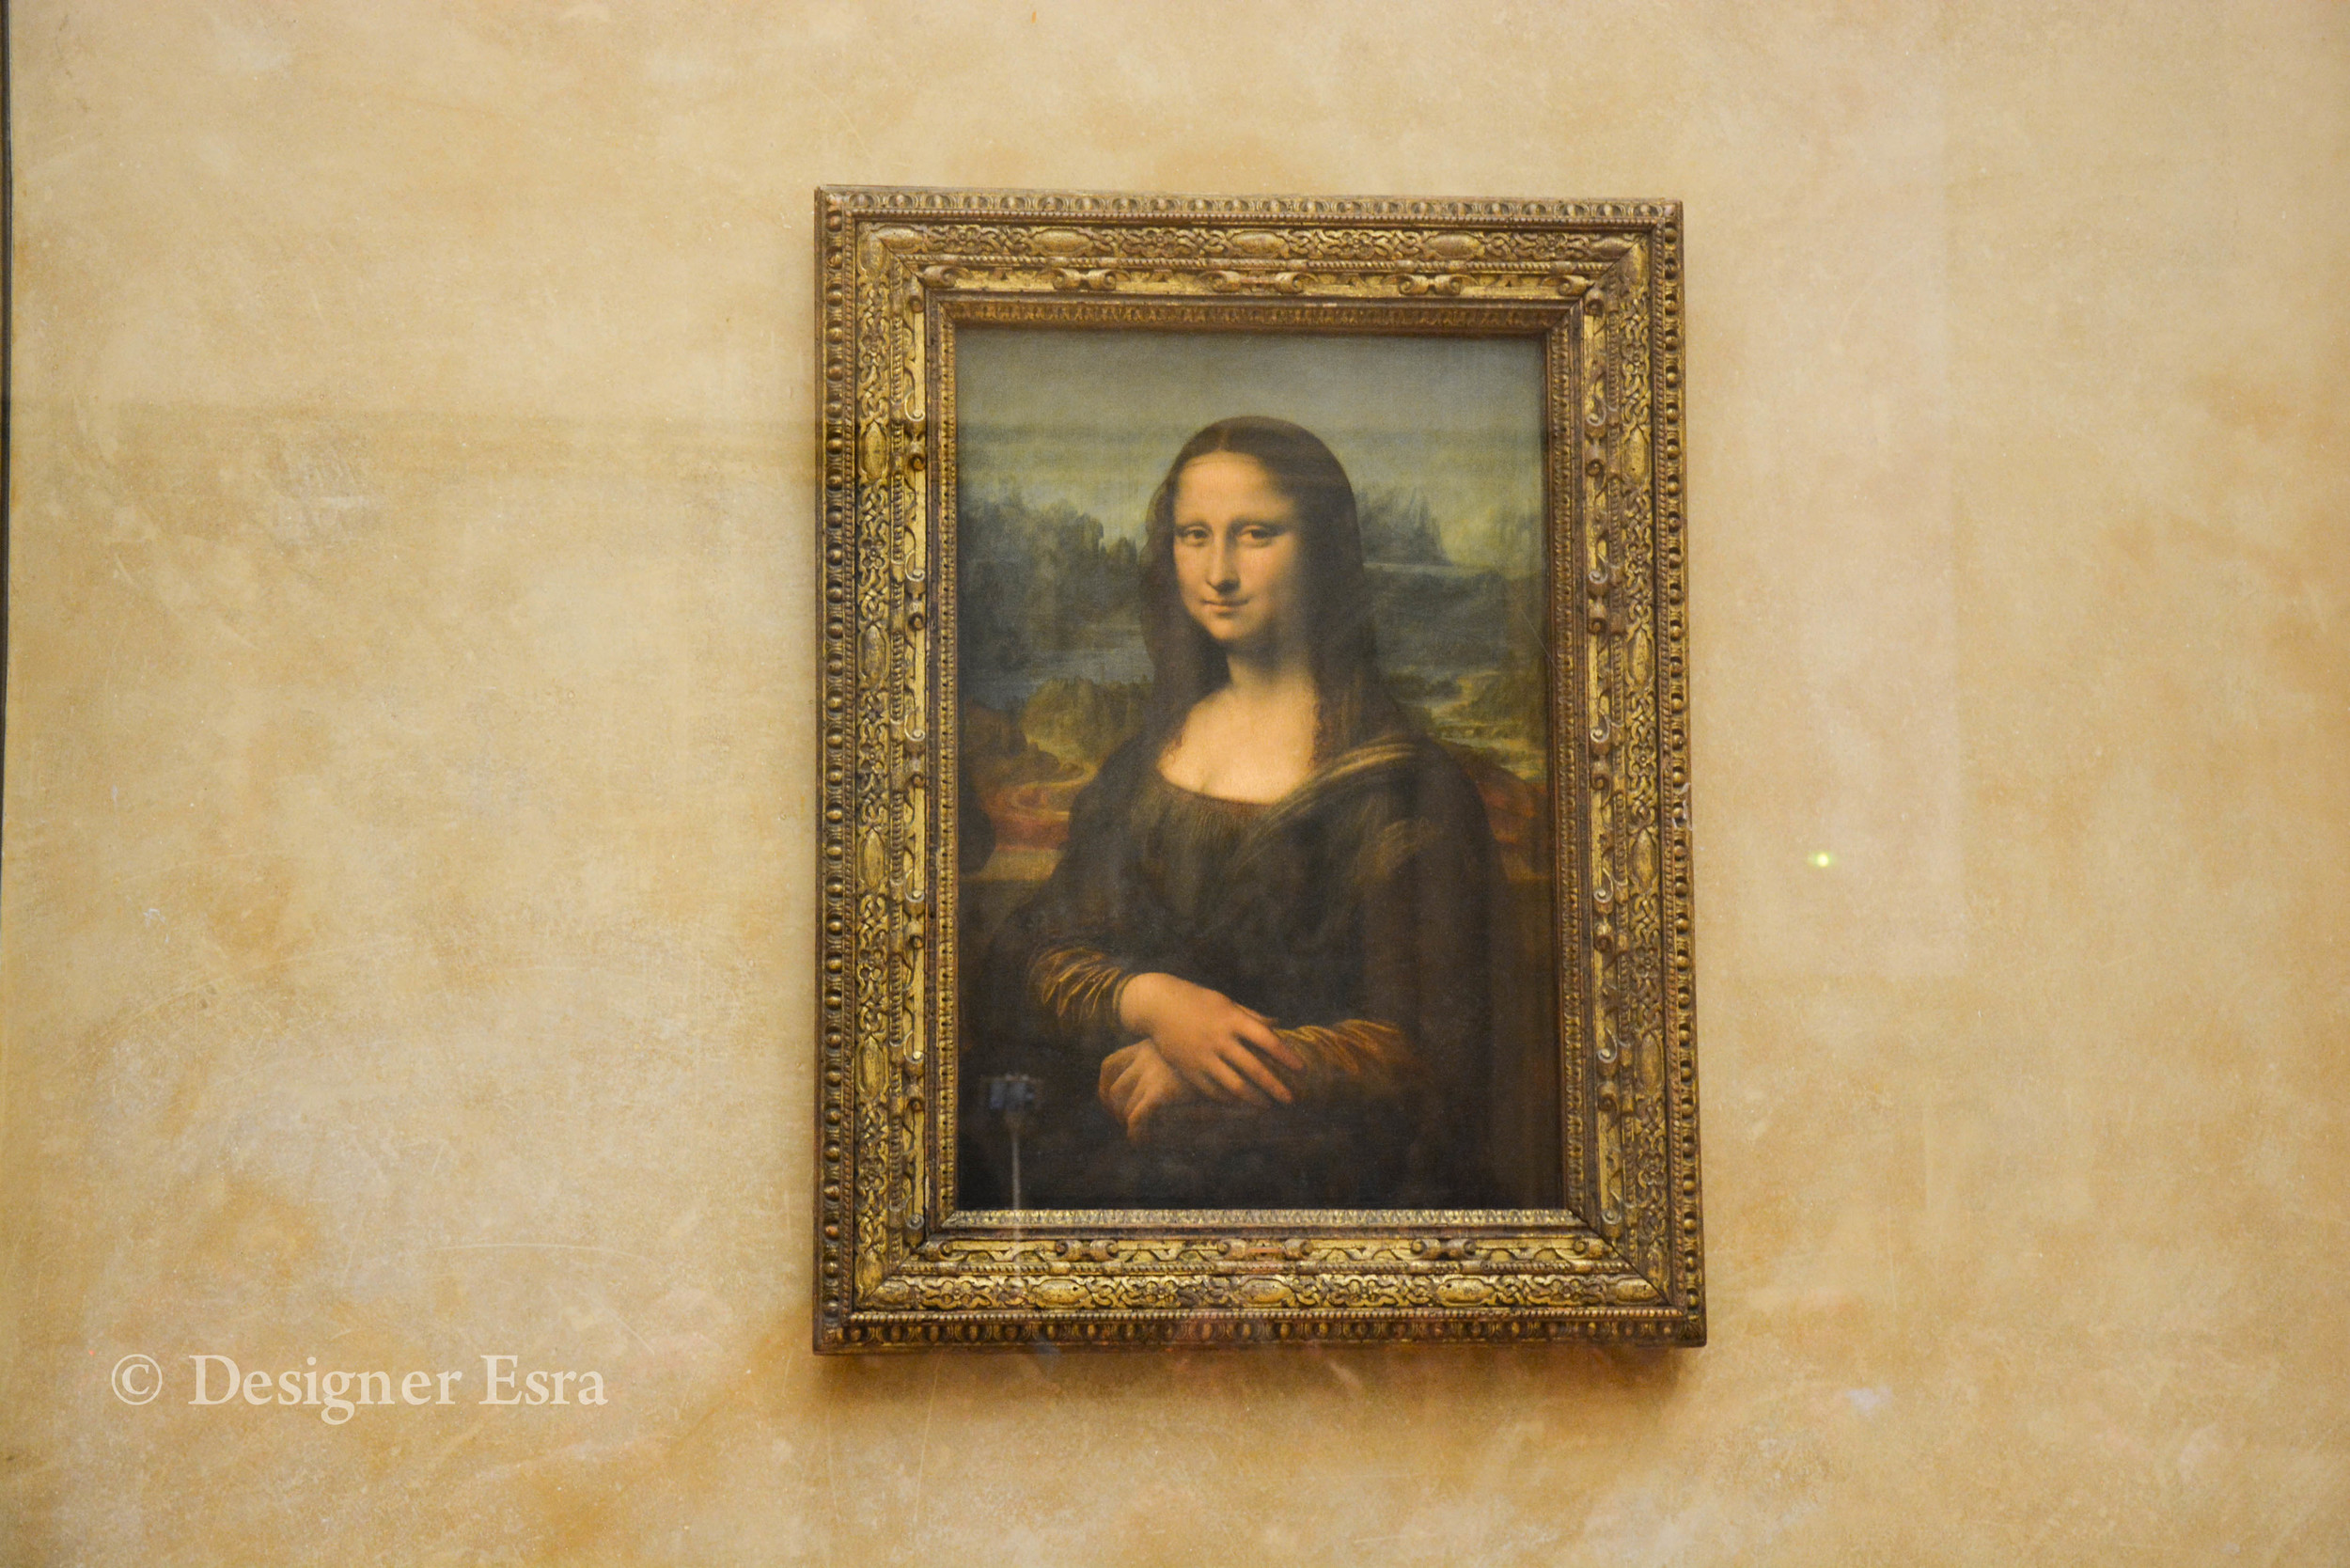 The Mona Lisa in the Louvre in Paris